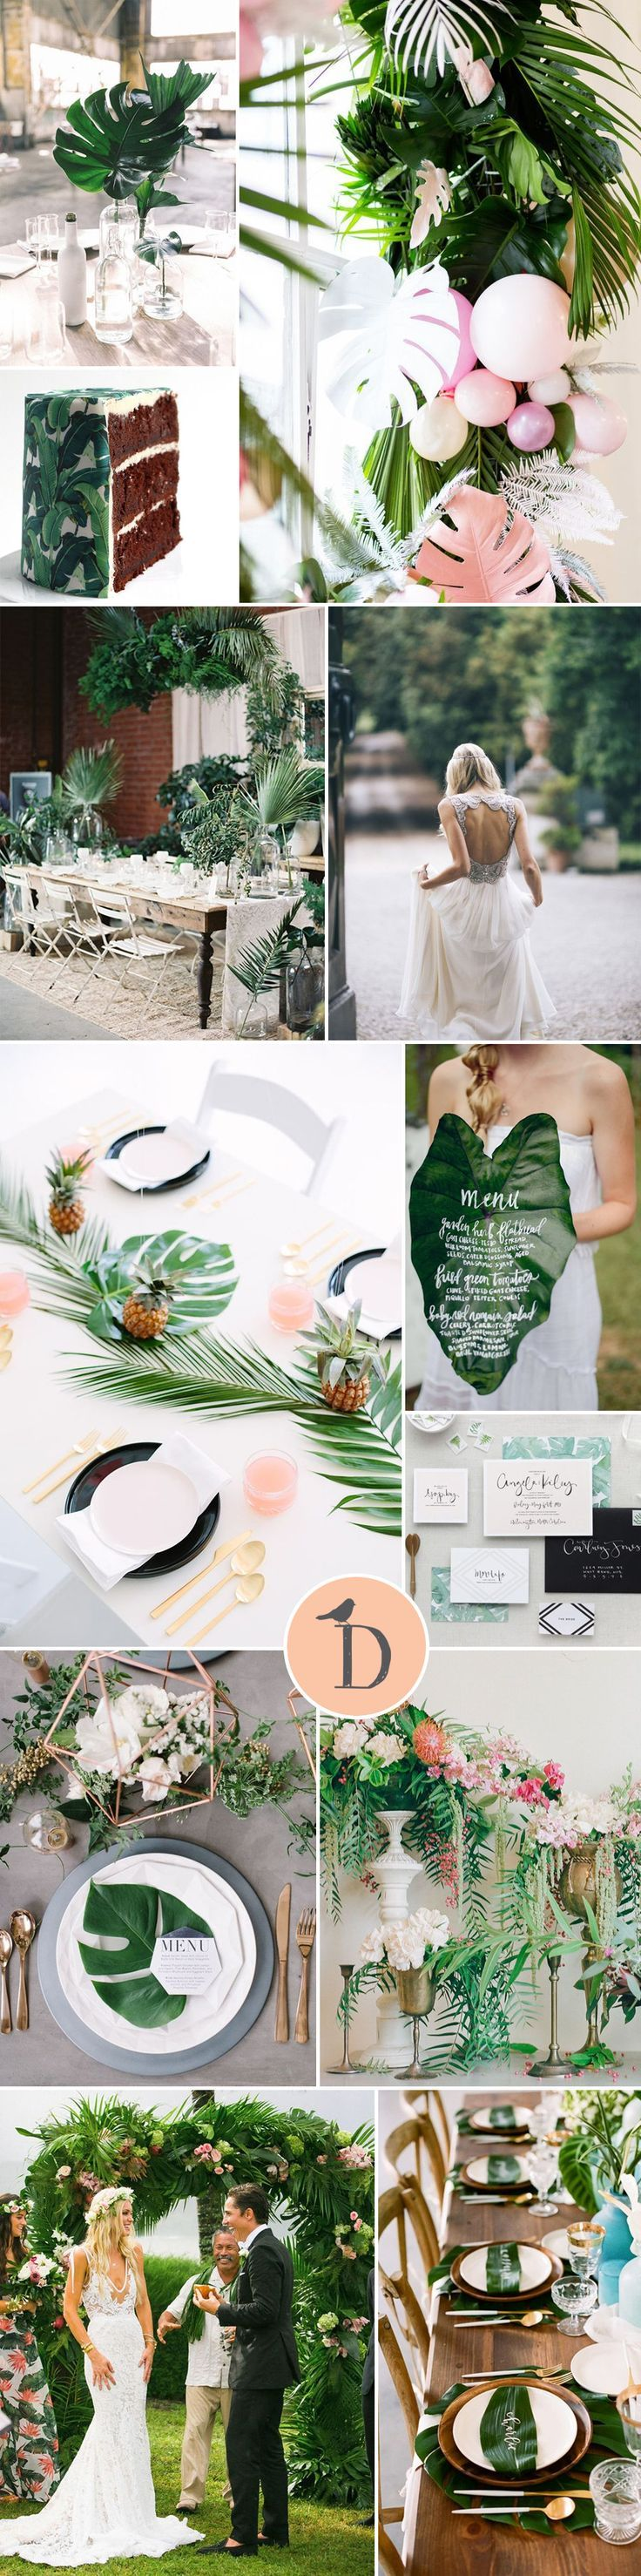 TROPICAL PALM LEAF WEDDING INSPIRATION It might not quite be summer yet – but this is one wedding trend to watch out for! Tropical palm leaves make a gorgeously graphic statement. Simple and modern, they make a great way to tie together different elements of your wedding.